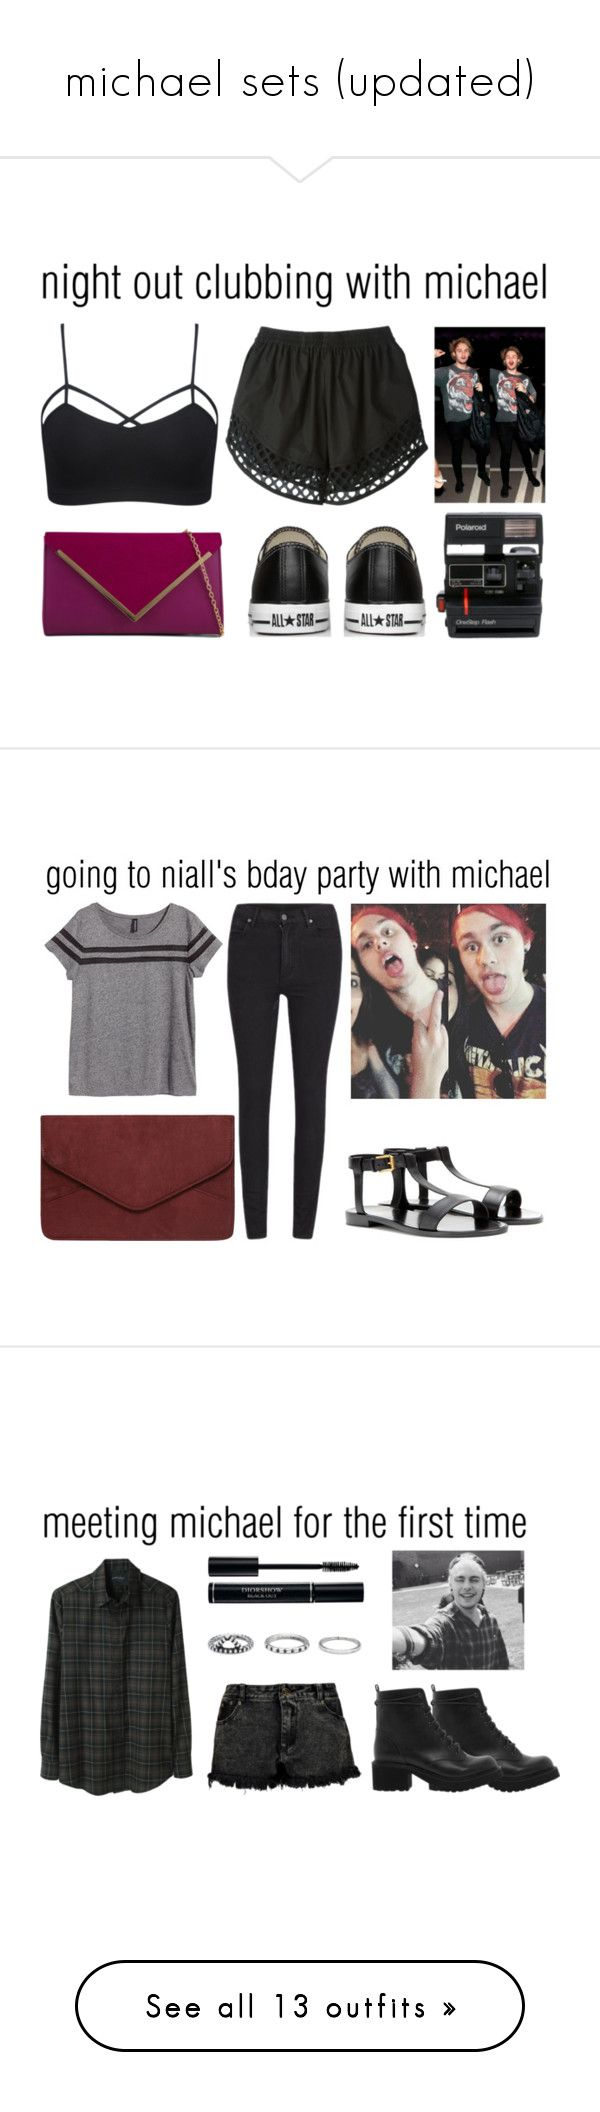 """michael sets (updated)"" by onedirectionismykyroptonite ❤ liked on Polyvore featuring moda, Wet Seal, Carven, ALDO, Converse, Polaroid, michael, michaelclifford, 5secondsofsummer y cluboutfits"